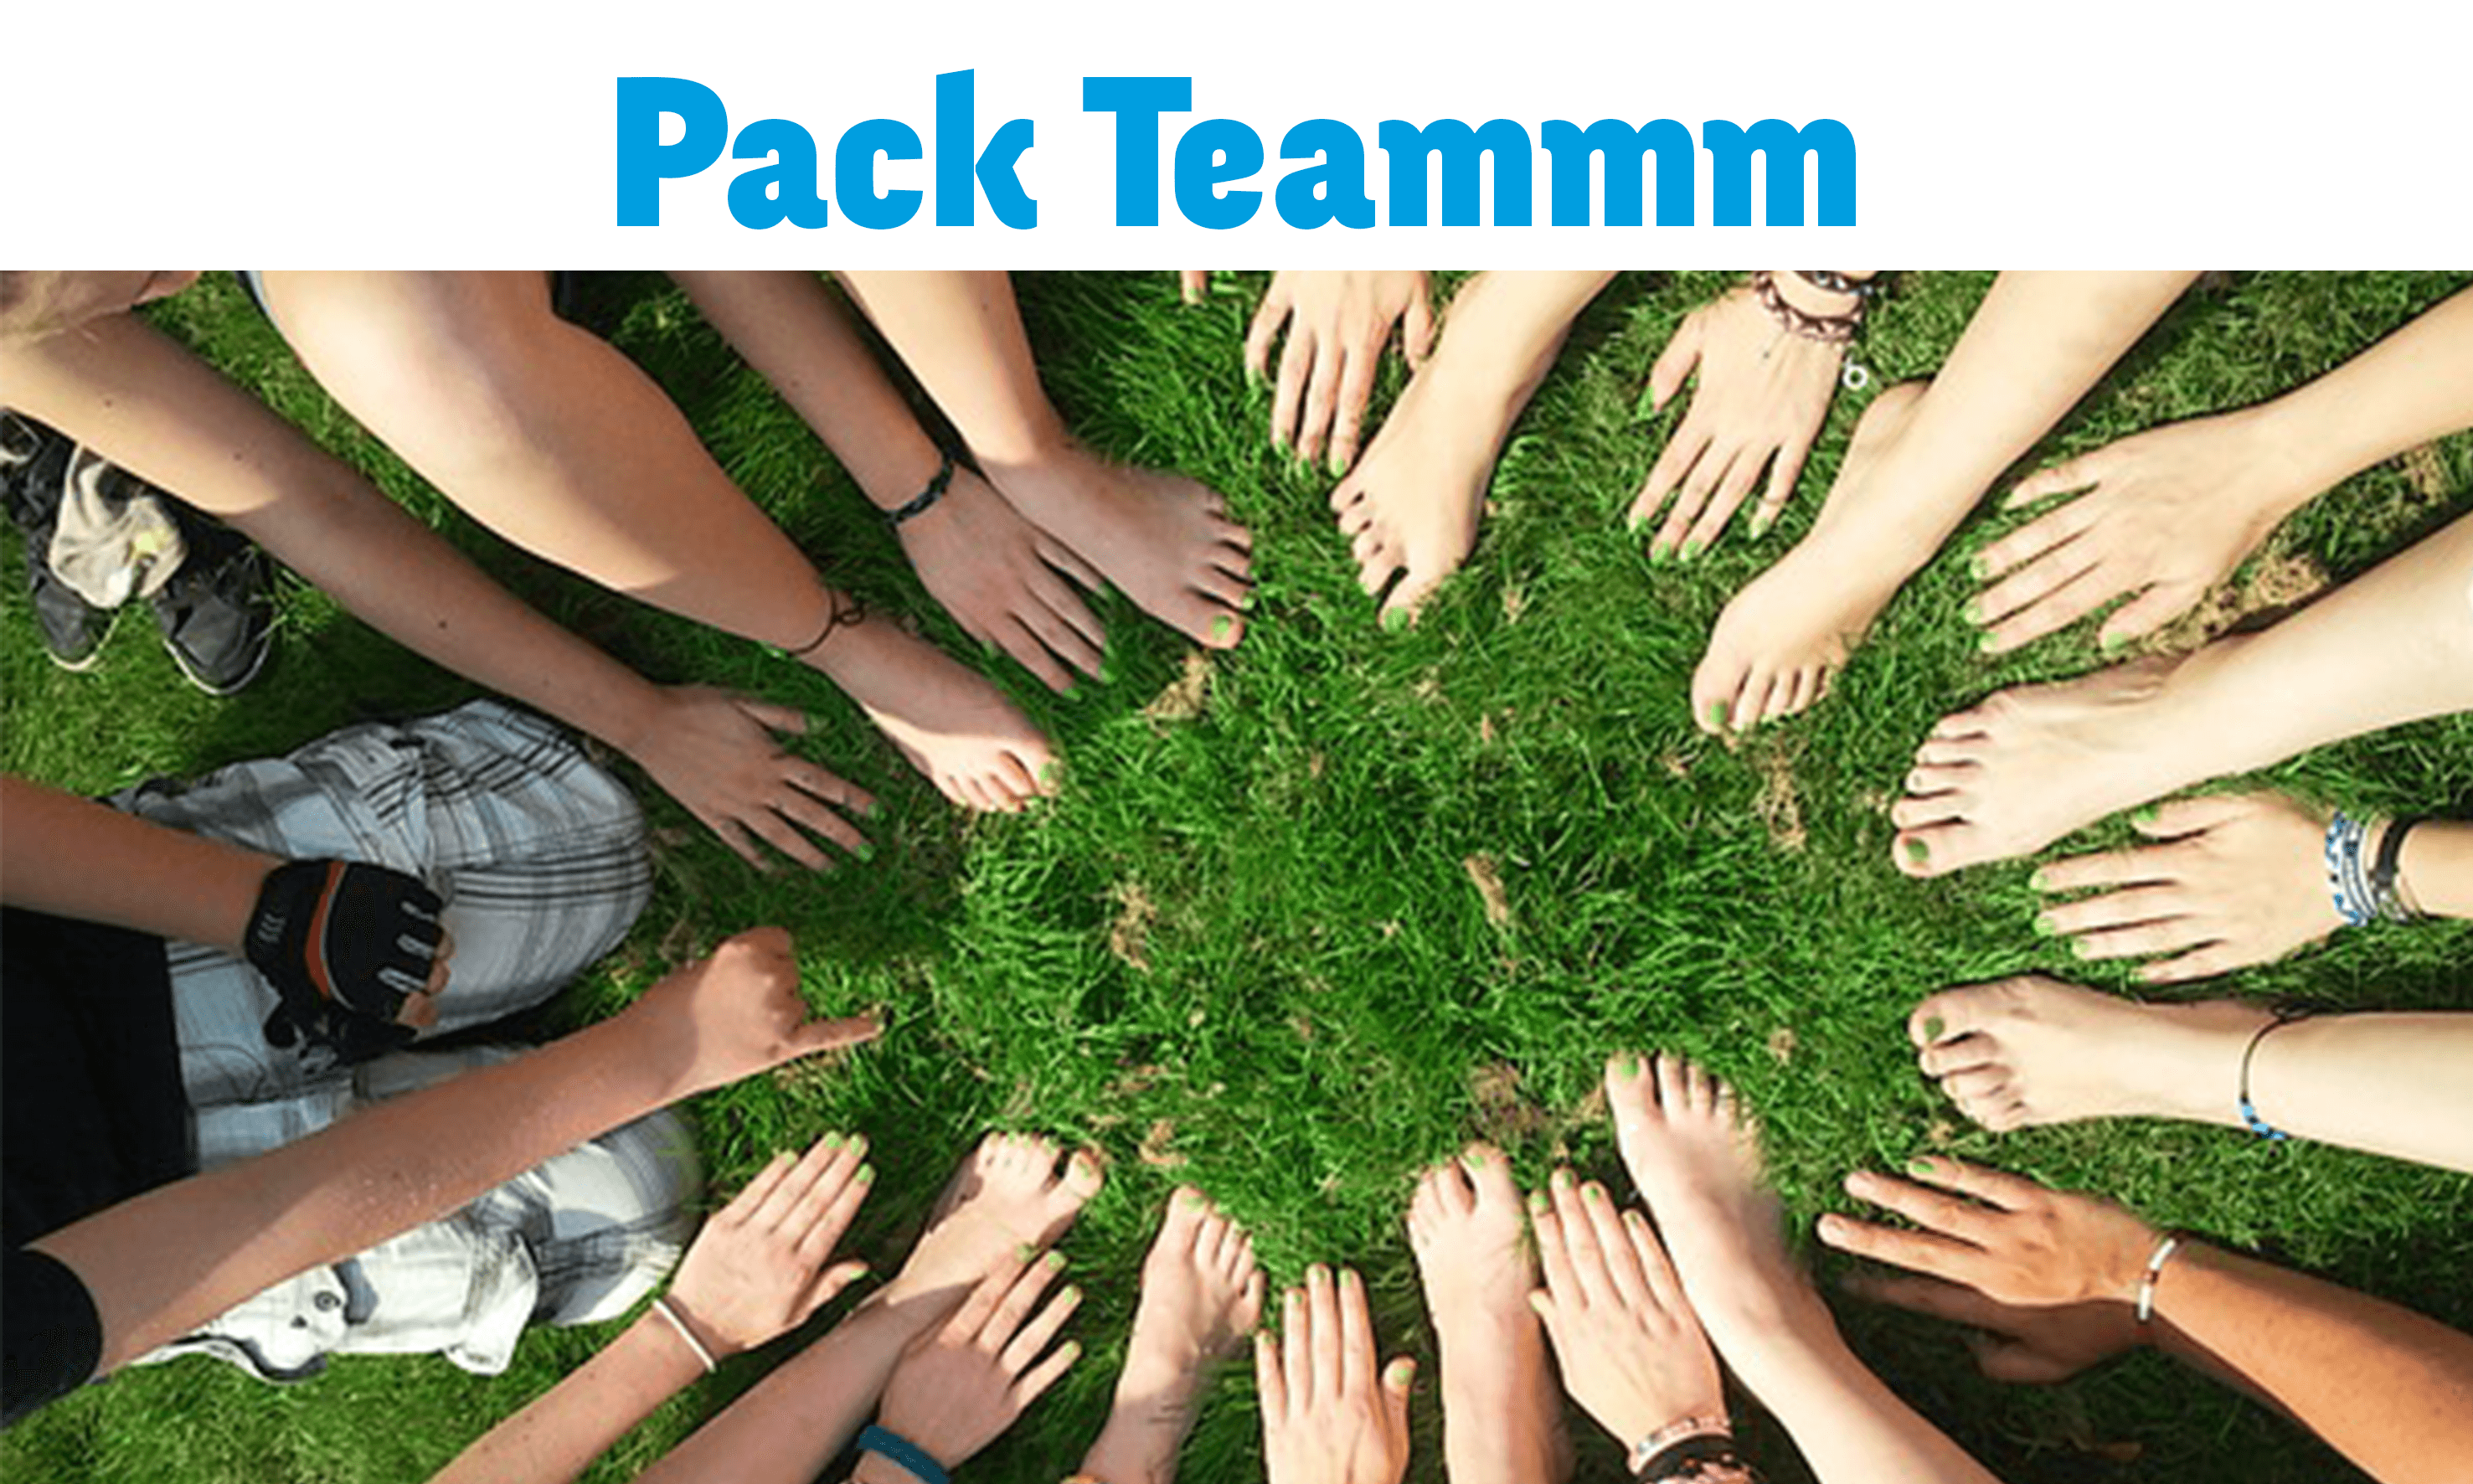 Pack_Team-1464714914.png